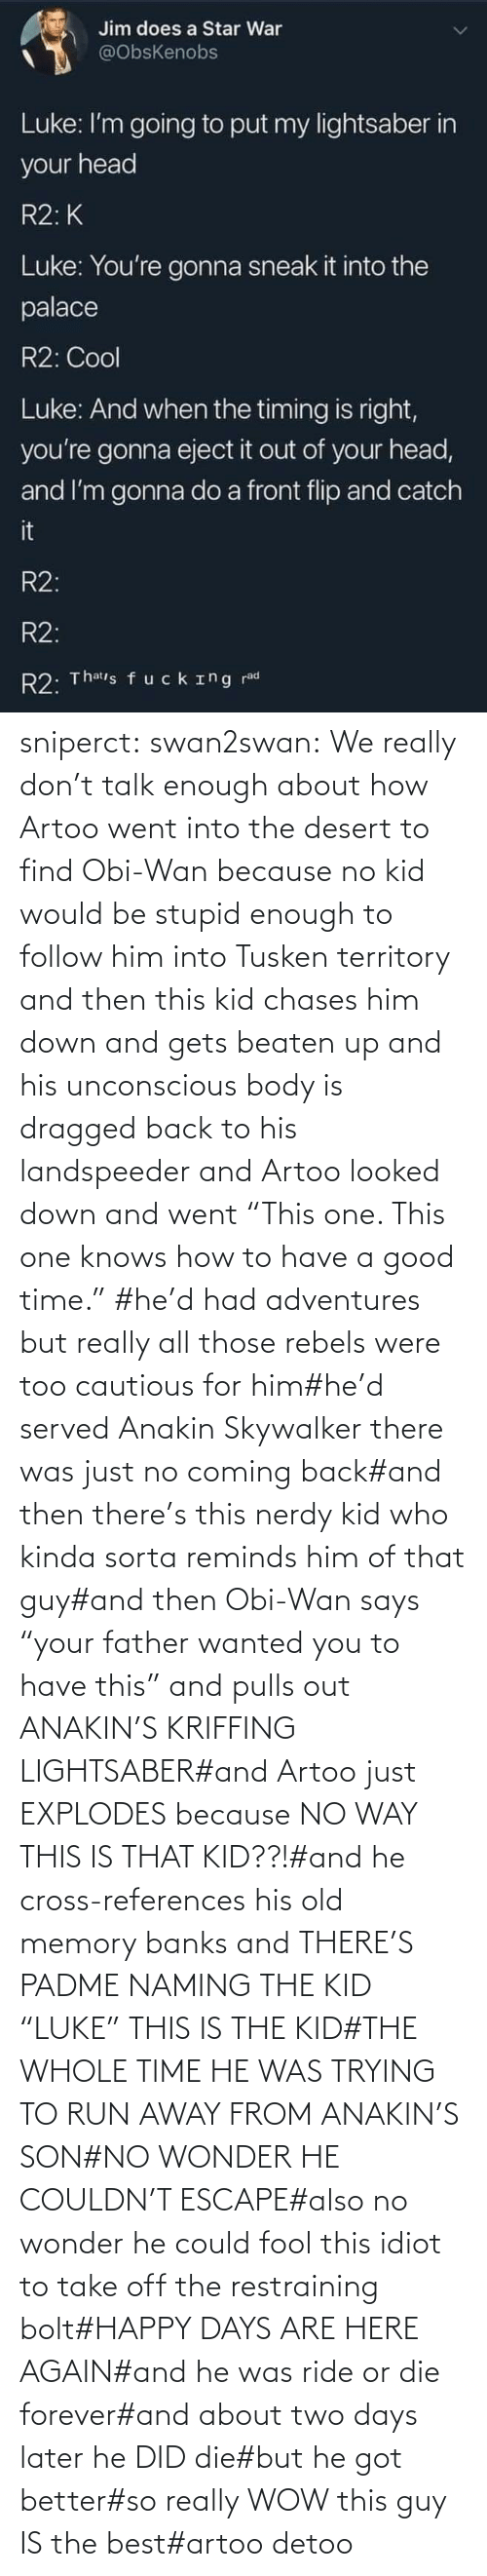 "But He: sniperct:  swan2swan: We really don't talk enough about how Artoo went into the desert to find Obi-Wan because no kid would be stupid enough to follow him into Tusken territory and then this kid chases him down and gets beaten up and his unconscious body is dragged back to his landspeeder and Artoo looked down and went ""This one. This one knows how to have a good time.""  #he'd had adventures but really all those rebels were too cautious for him#he'd served Anakin Skywalker there was just no coming back#and then there's this nerdy kid who kinda sorta reminds him of that guy#and then Obi-Wan says ""your father wanted you to have this"" and pulls out ANAKIN'S KRIFFING LIGHTSABER#and Artoo just EXPLODES because NO WAY THIS IS THAT KID??!#and he cross-references his old memory banks and THERE'S PADME NAMING THE KID ""LUKE"" THIS IS THE KID#THE WHOLE TIME HE WAS TRYING TO RUN AWAY FROM ANAKIN'S SON#NO WONDER HE COULDN'T ESCAPE#also no wonder he could fool this idiot to take off the restraining bolt#HAPPY DAYS ARE HERE AGAIN#and he was ride or die forever#and about two days later he DID die#but he got better#so really WOW this guy IS the best#artoo detoo"